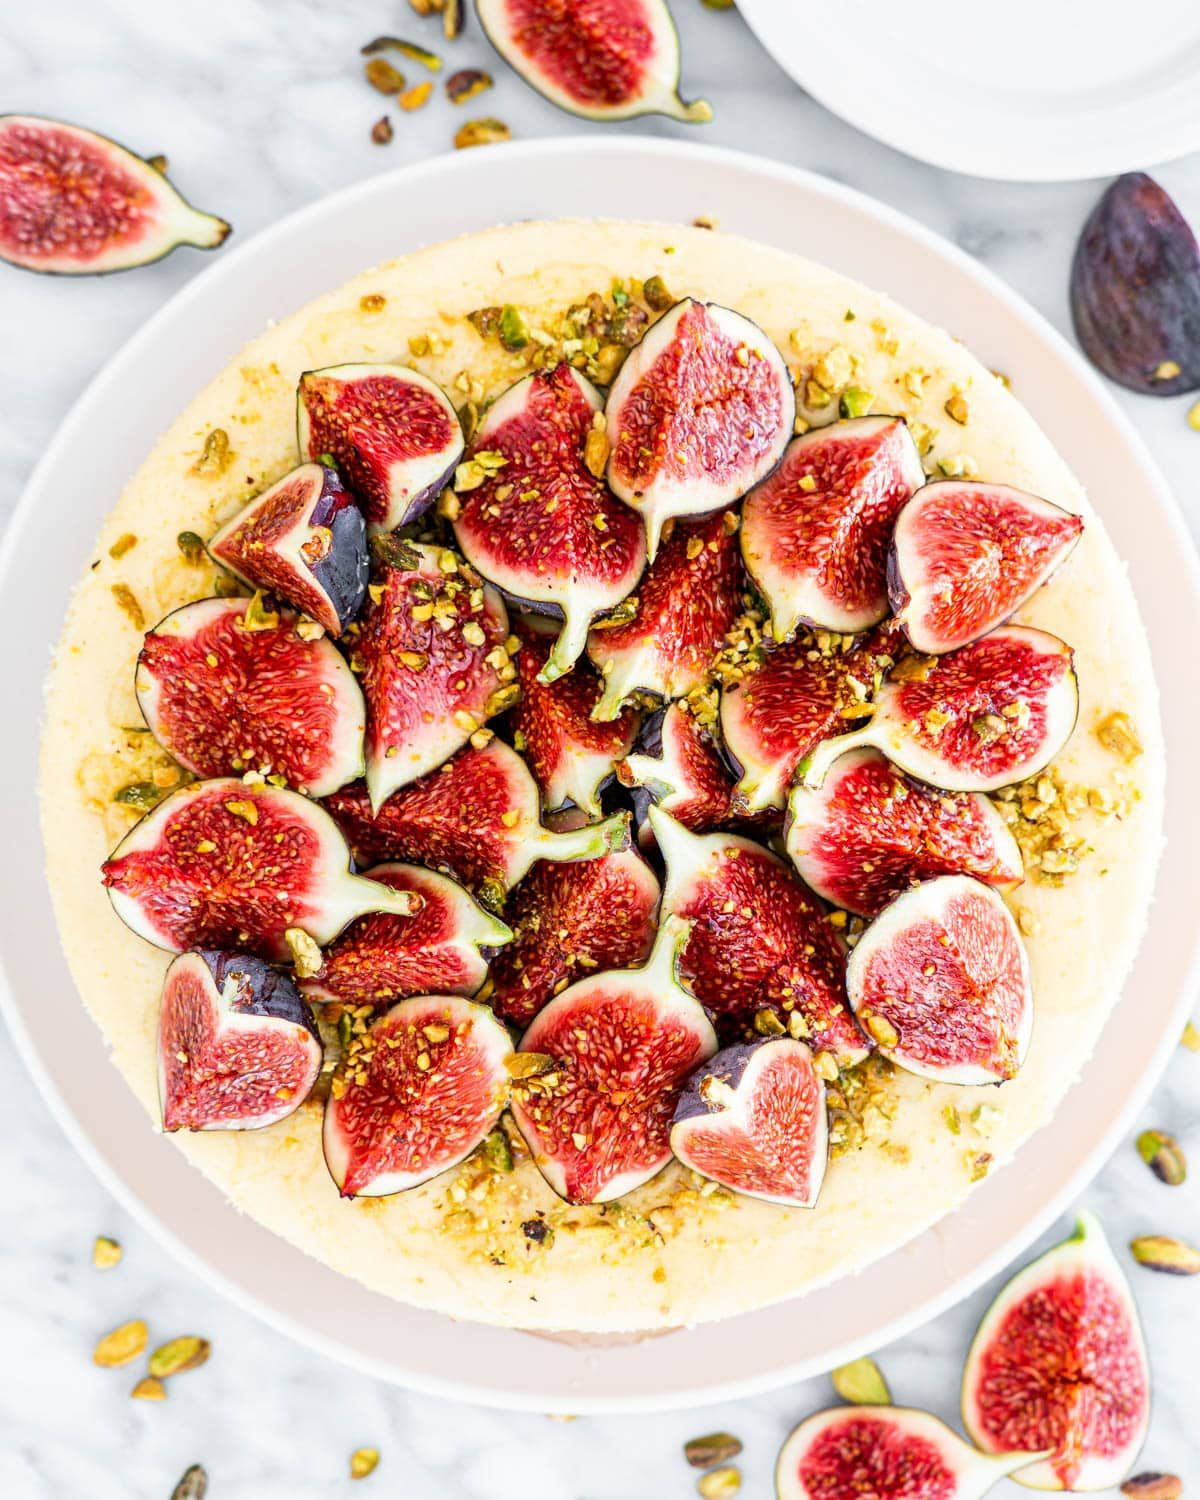 Goat Cheese Cheesecake with Figs, Pistachios and Honey - A perfect combination of fresh figs and creamy cheesecake, drizzled with honey, drool worthy! #goatcheese #cheesecake #figs #honey